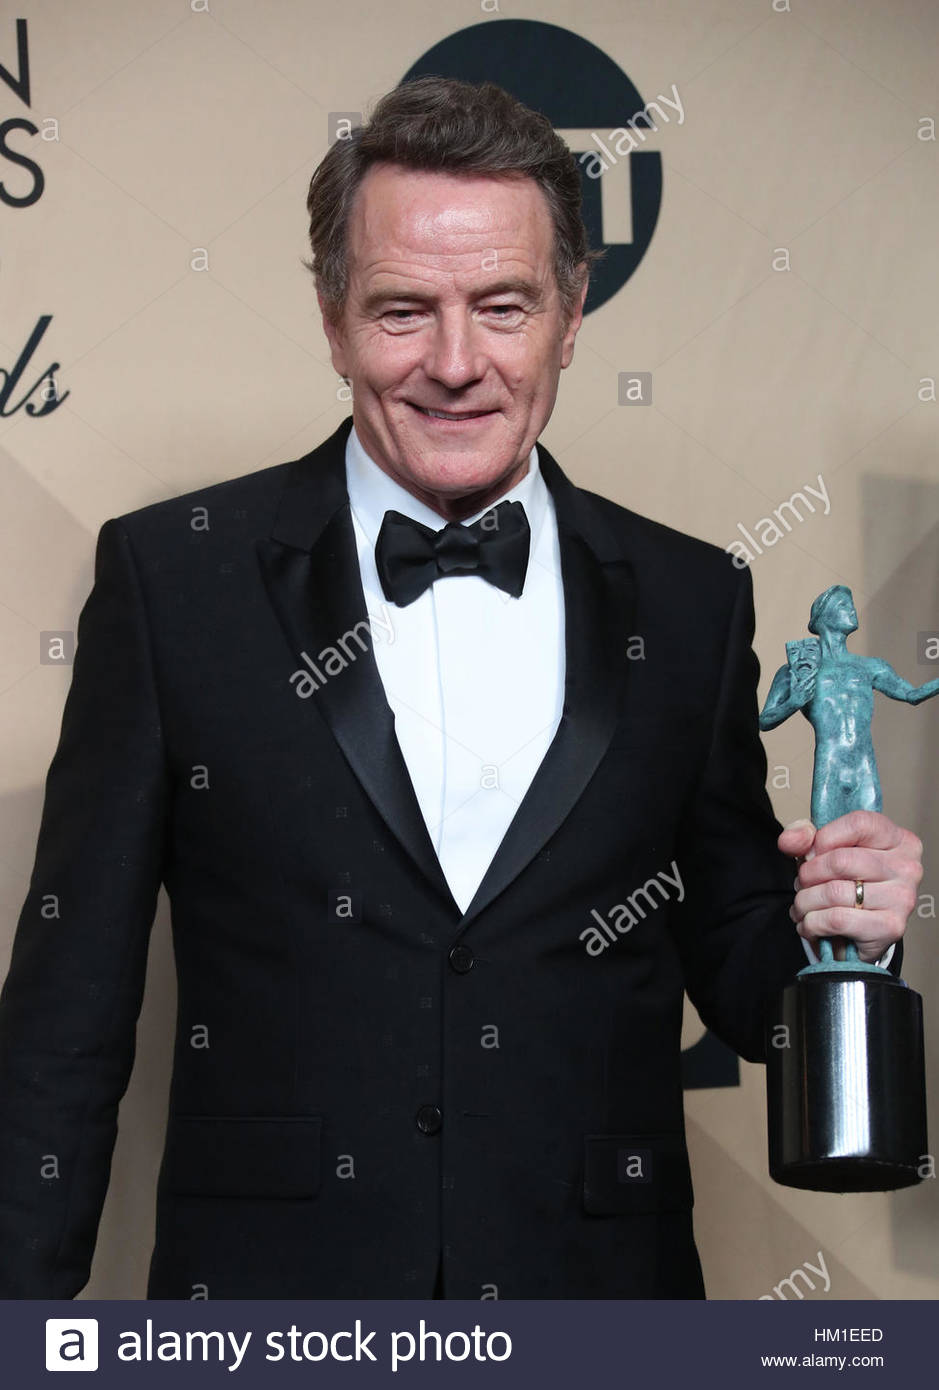 Los Angeles CA - 29. Januar Bryan Cranston, am 23. Annual Screen Actors Guild Awards - Presseraum, im Shrine Auditorium Stockfoto